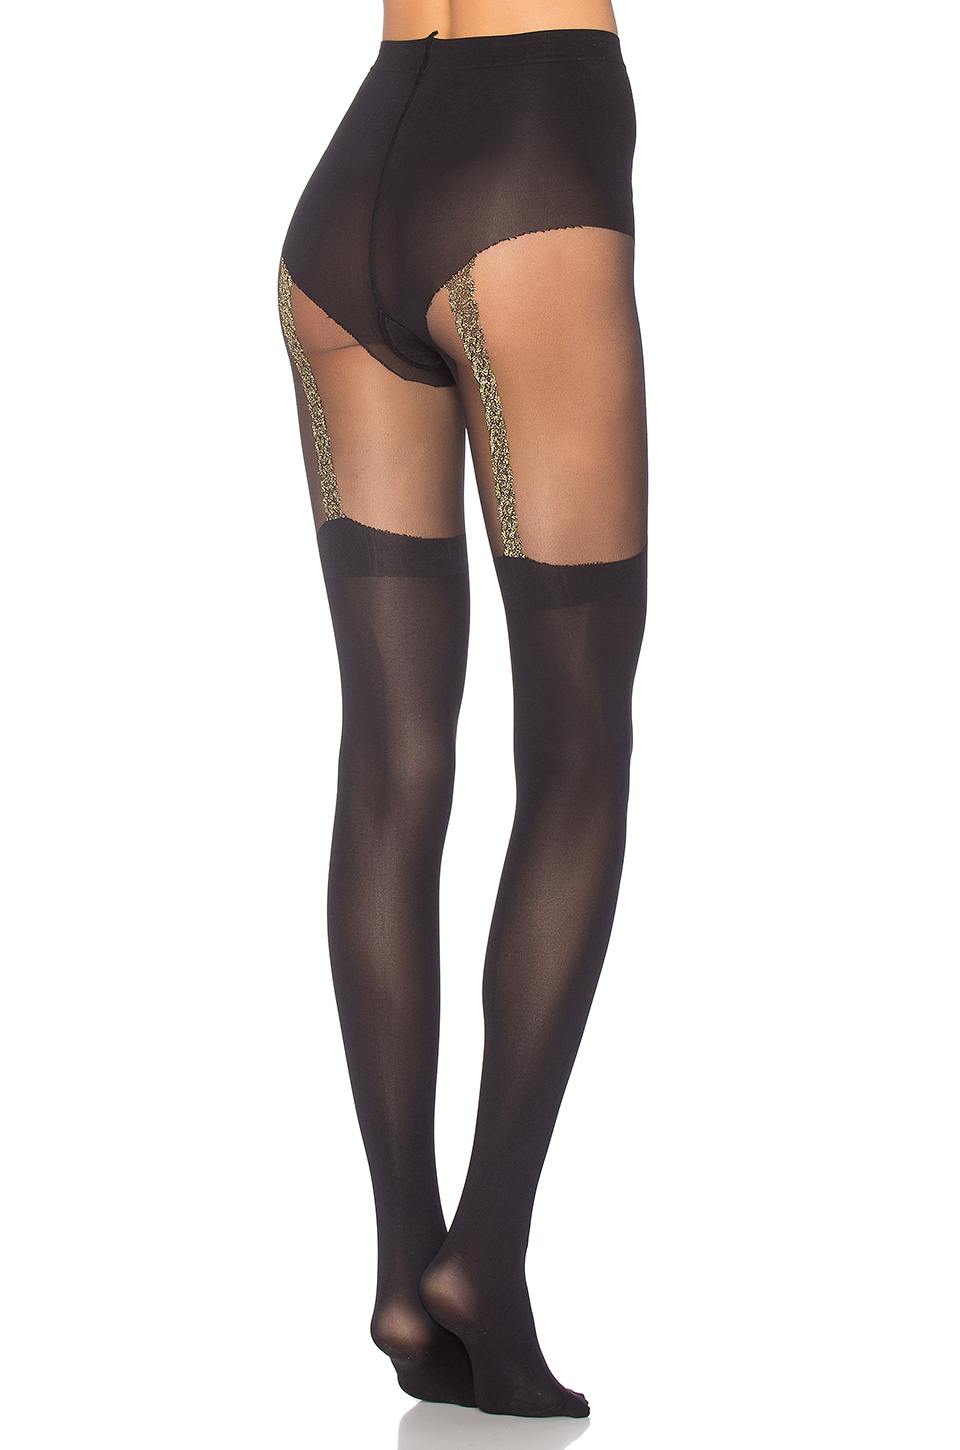 872d1cc0803 Lyst - Pretty Polly Gold Link Mock Suspender Tight in Black